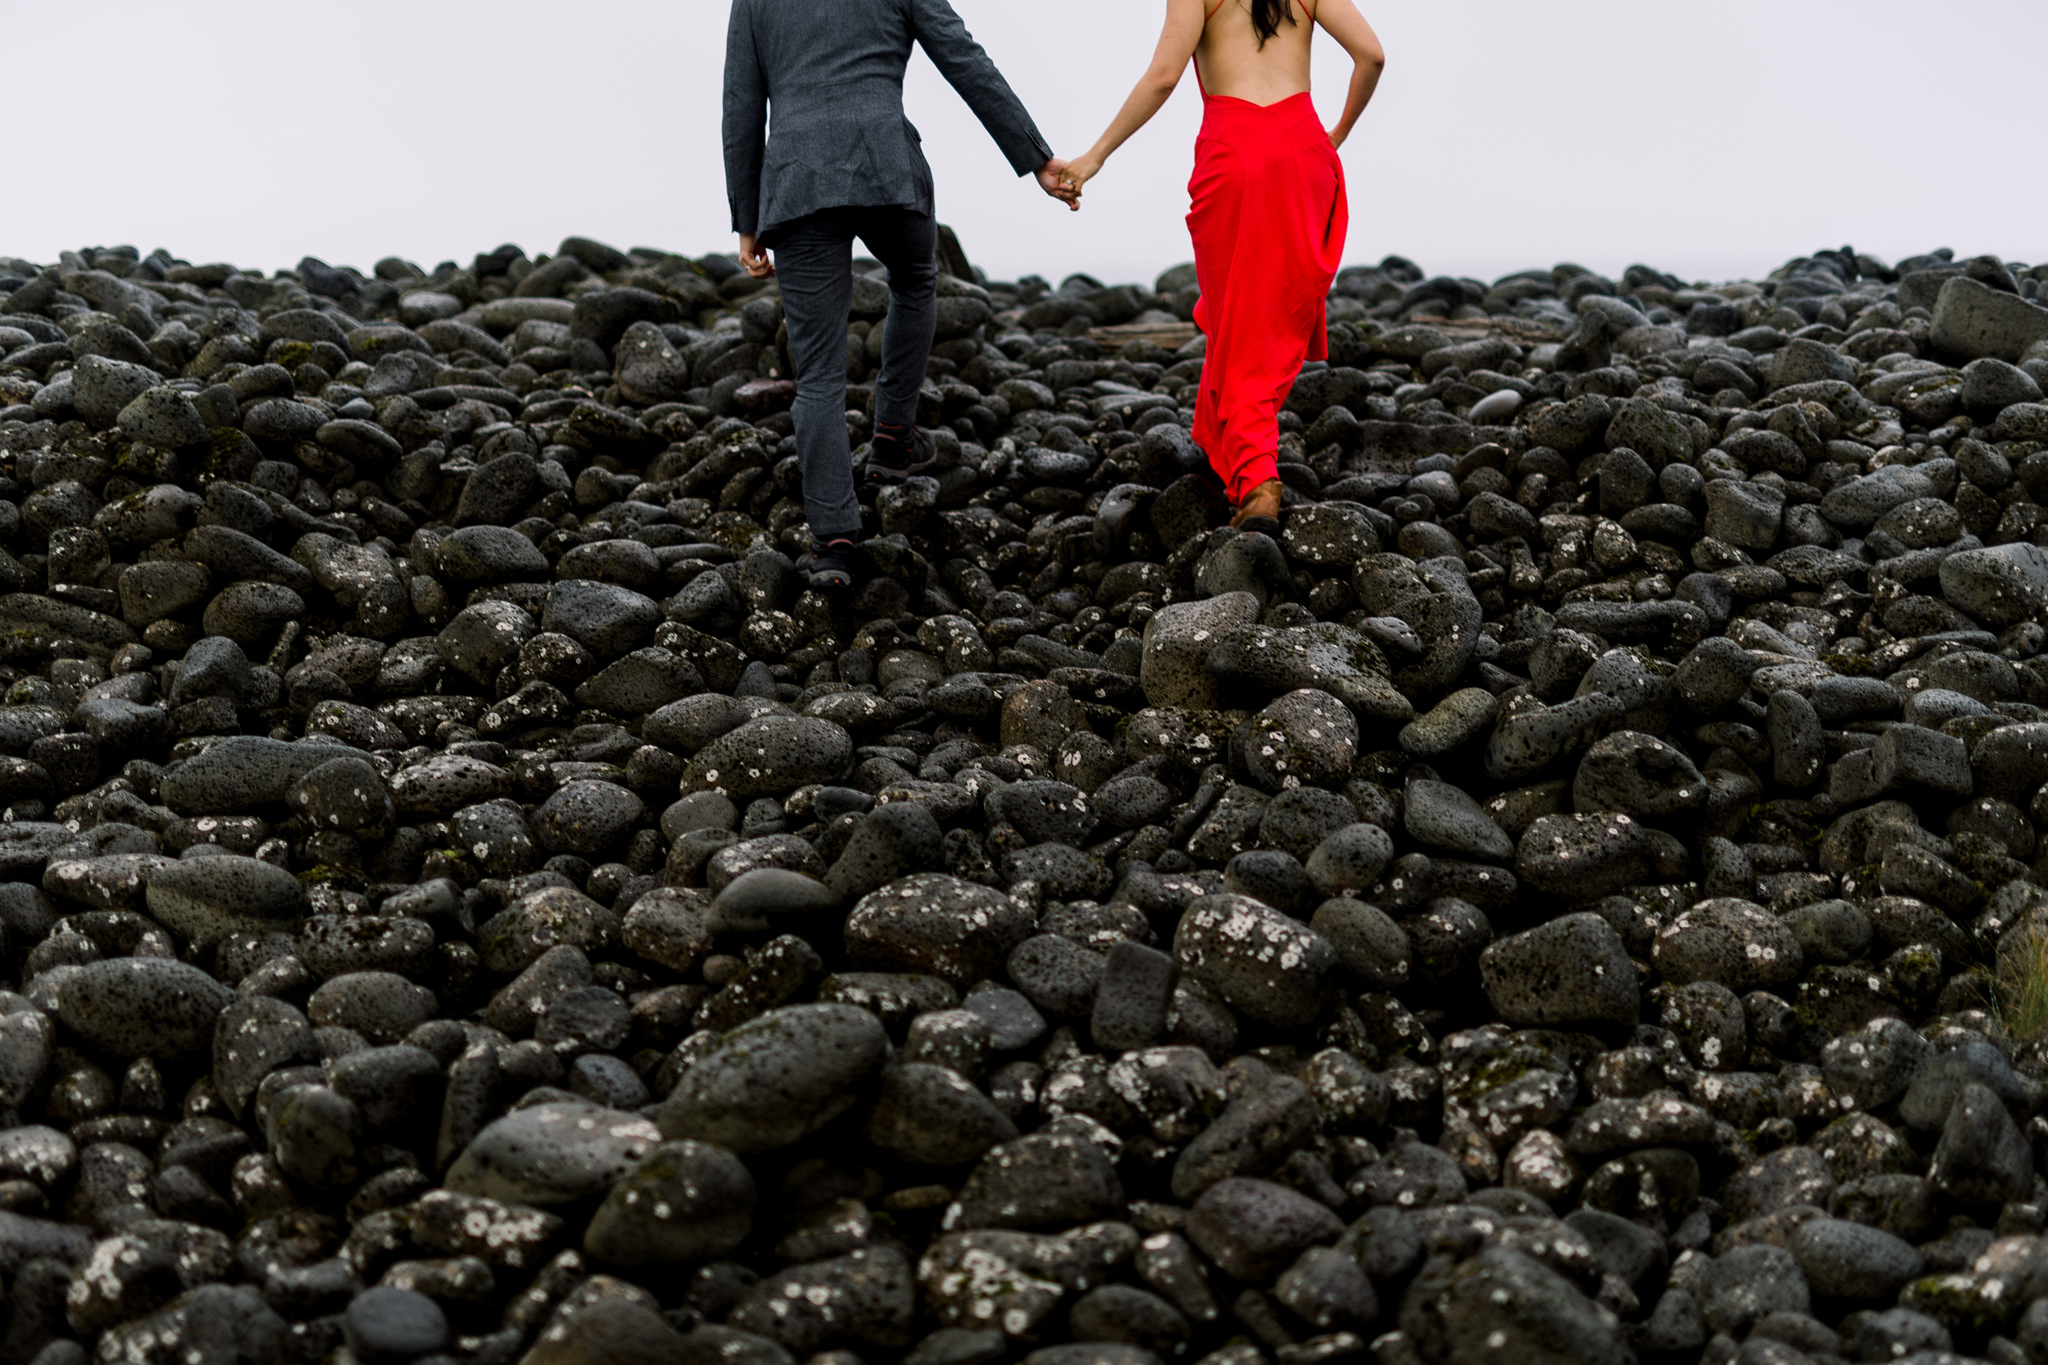 Iceland-wedding-elopement-photographer-MJ-Studios-Mait-Juriado